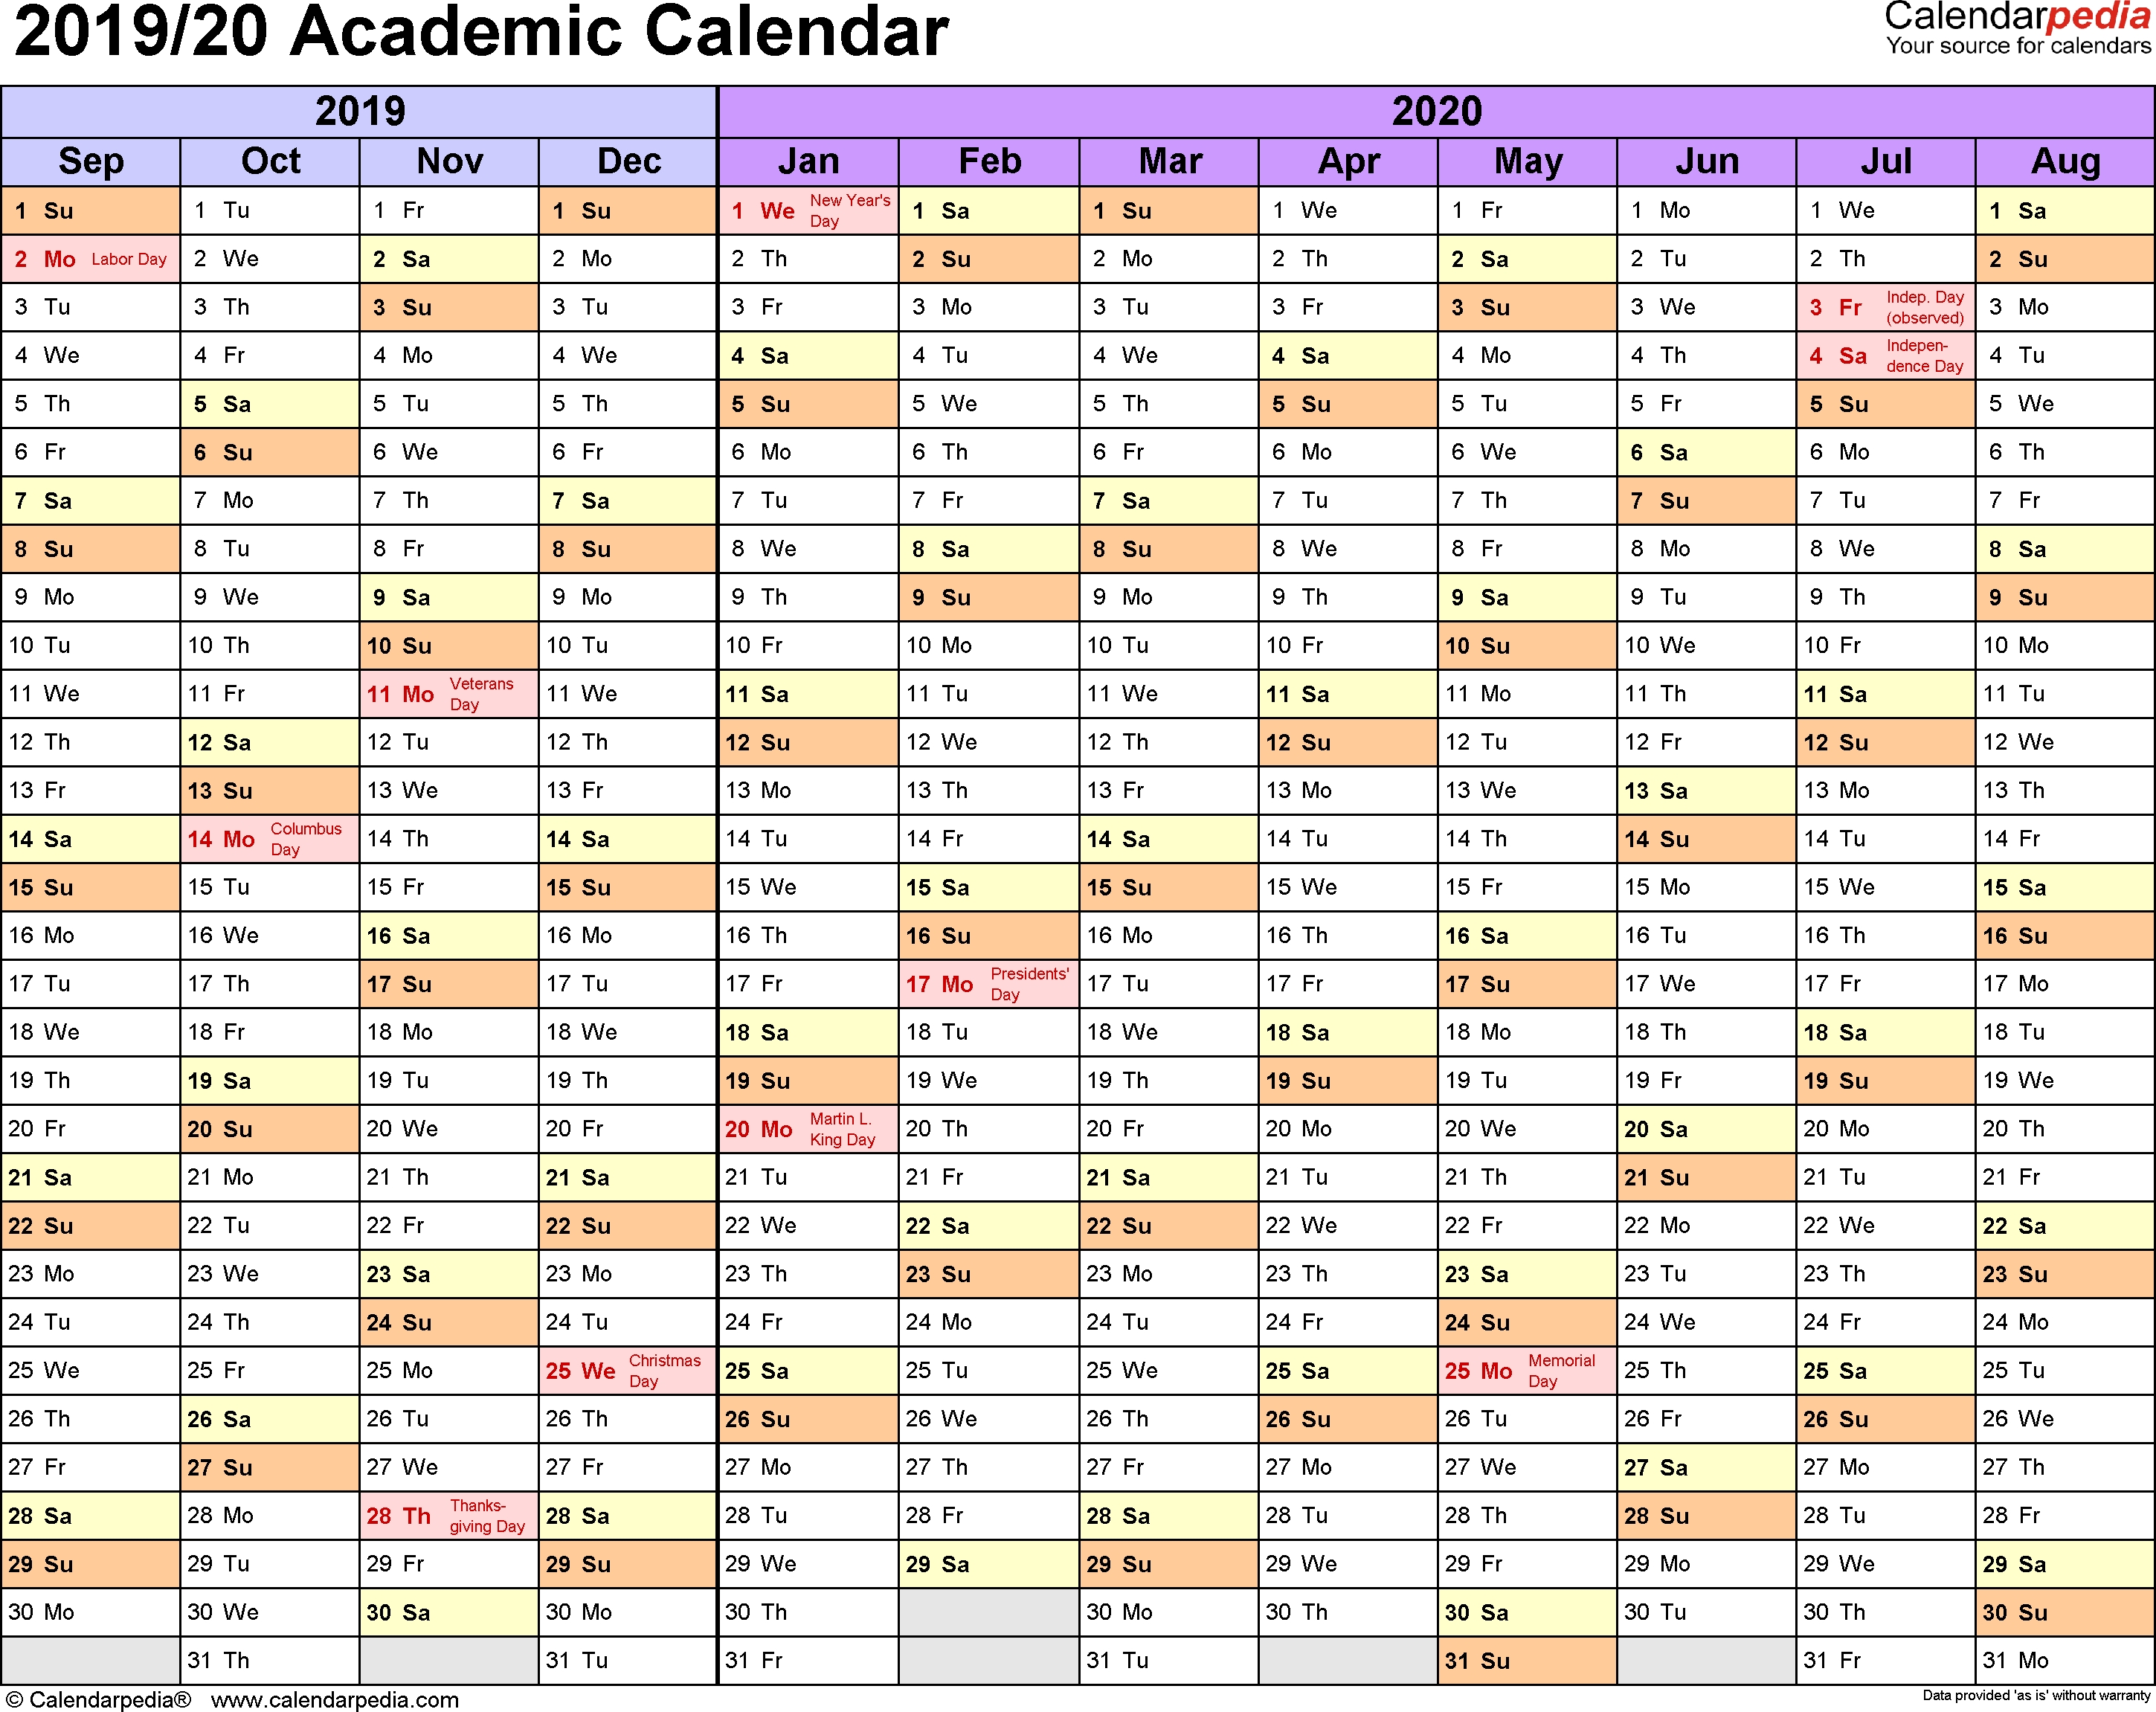 Academic Calendars 2019/2020 - Free Printable Excel Templates within Half Page Calendar Template 2019/2020